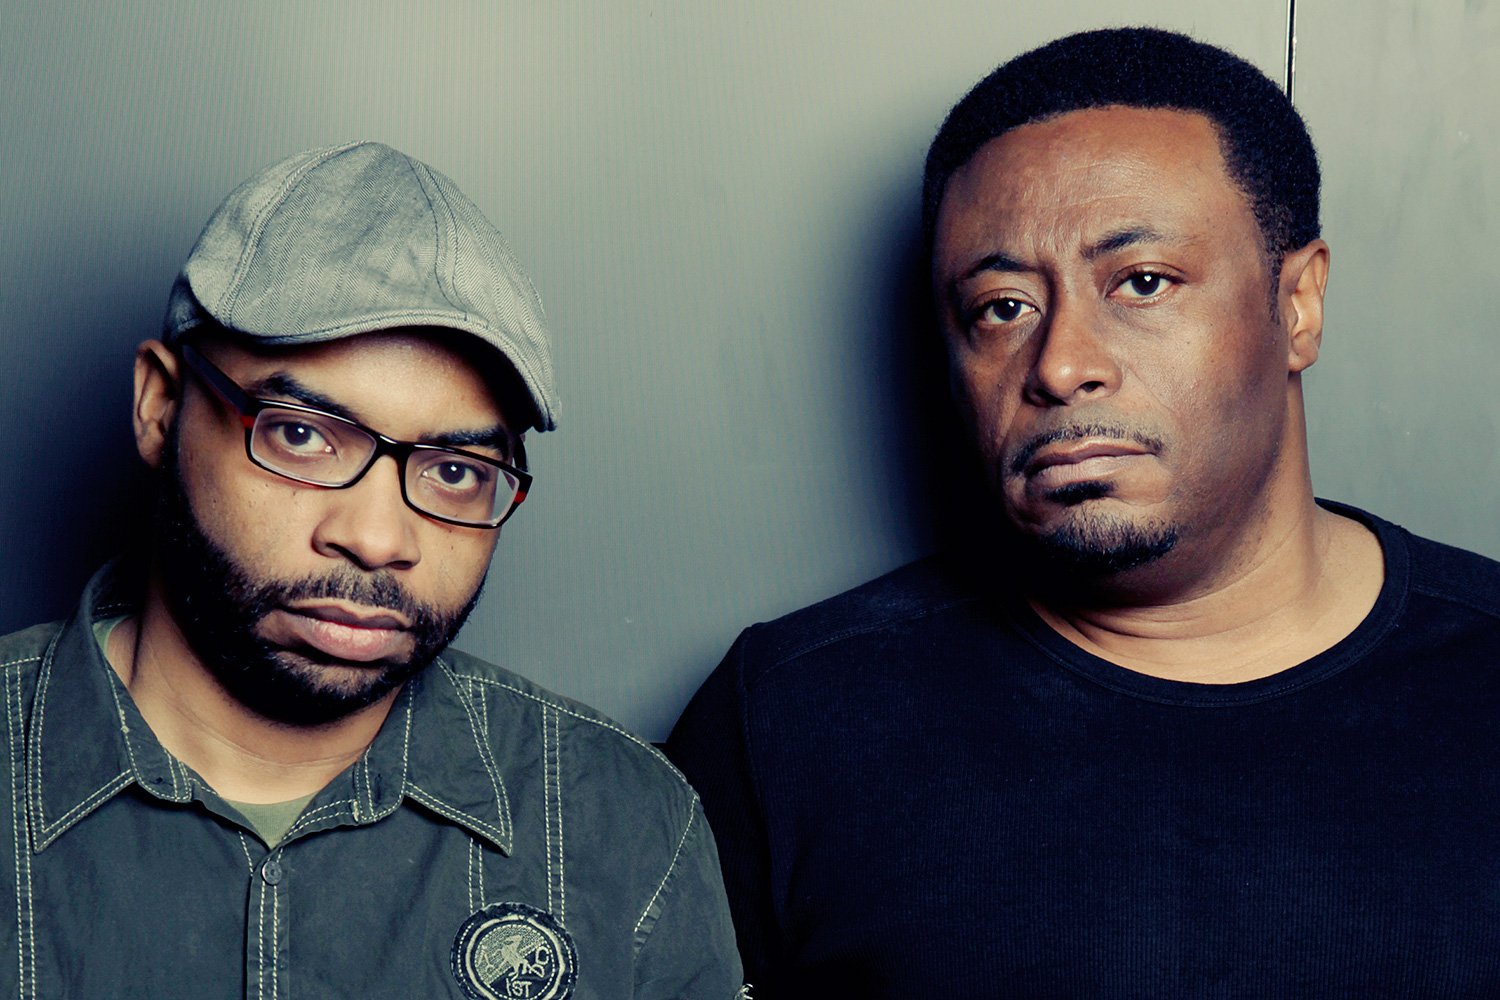 «Day of Love»: Octave One